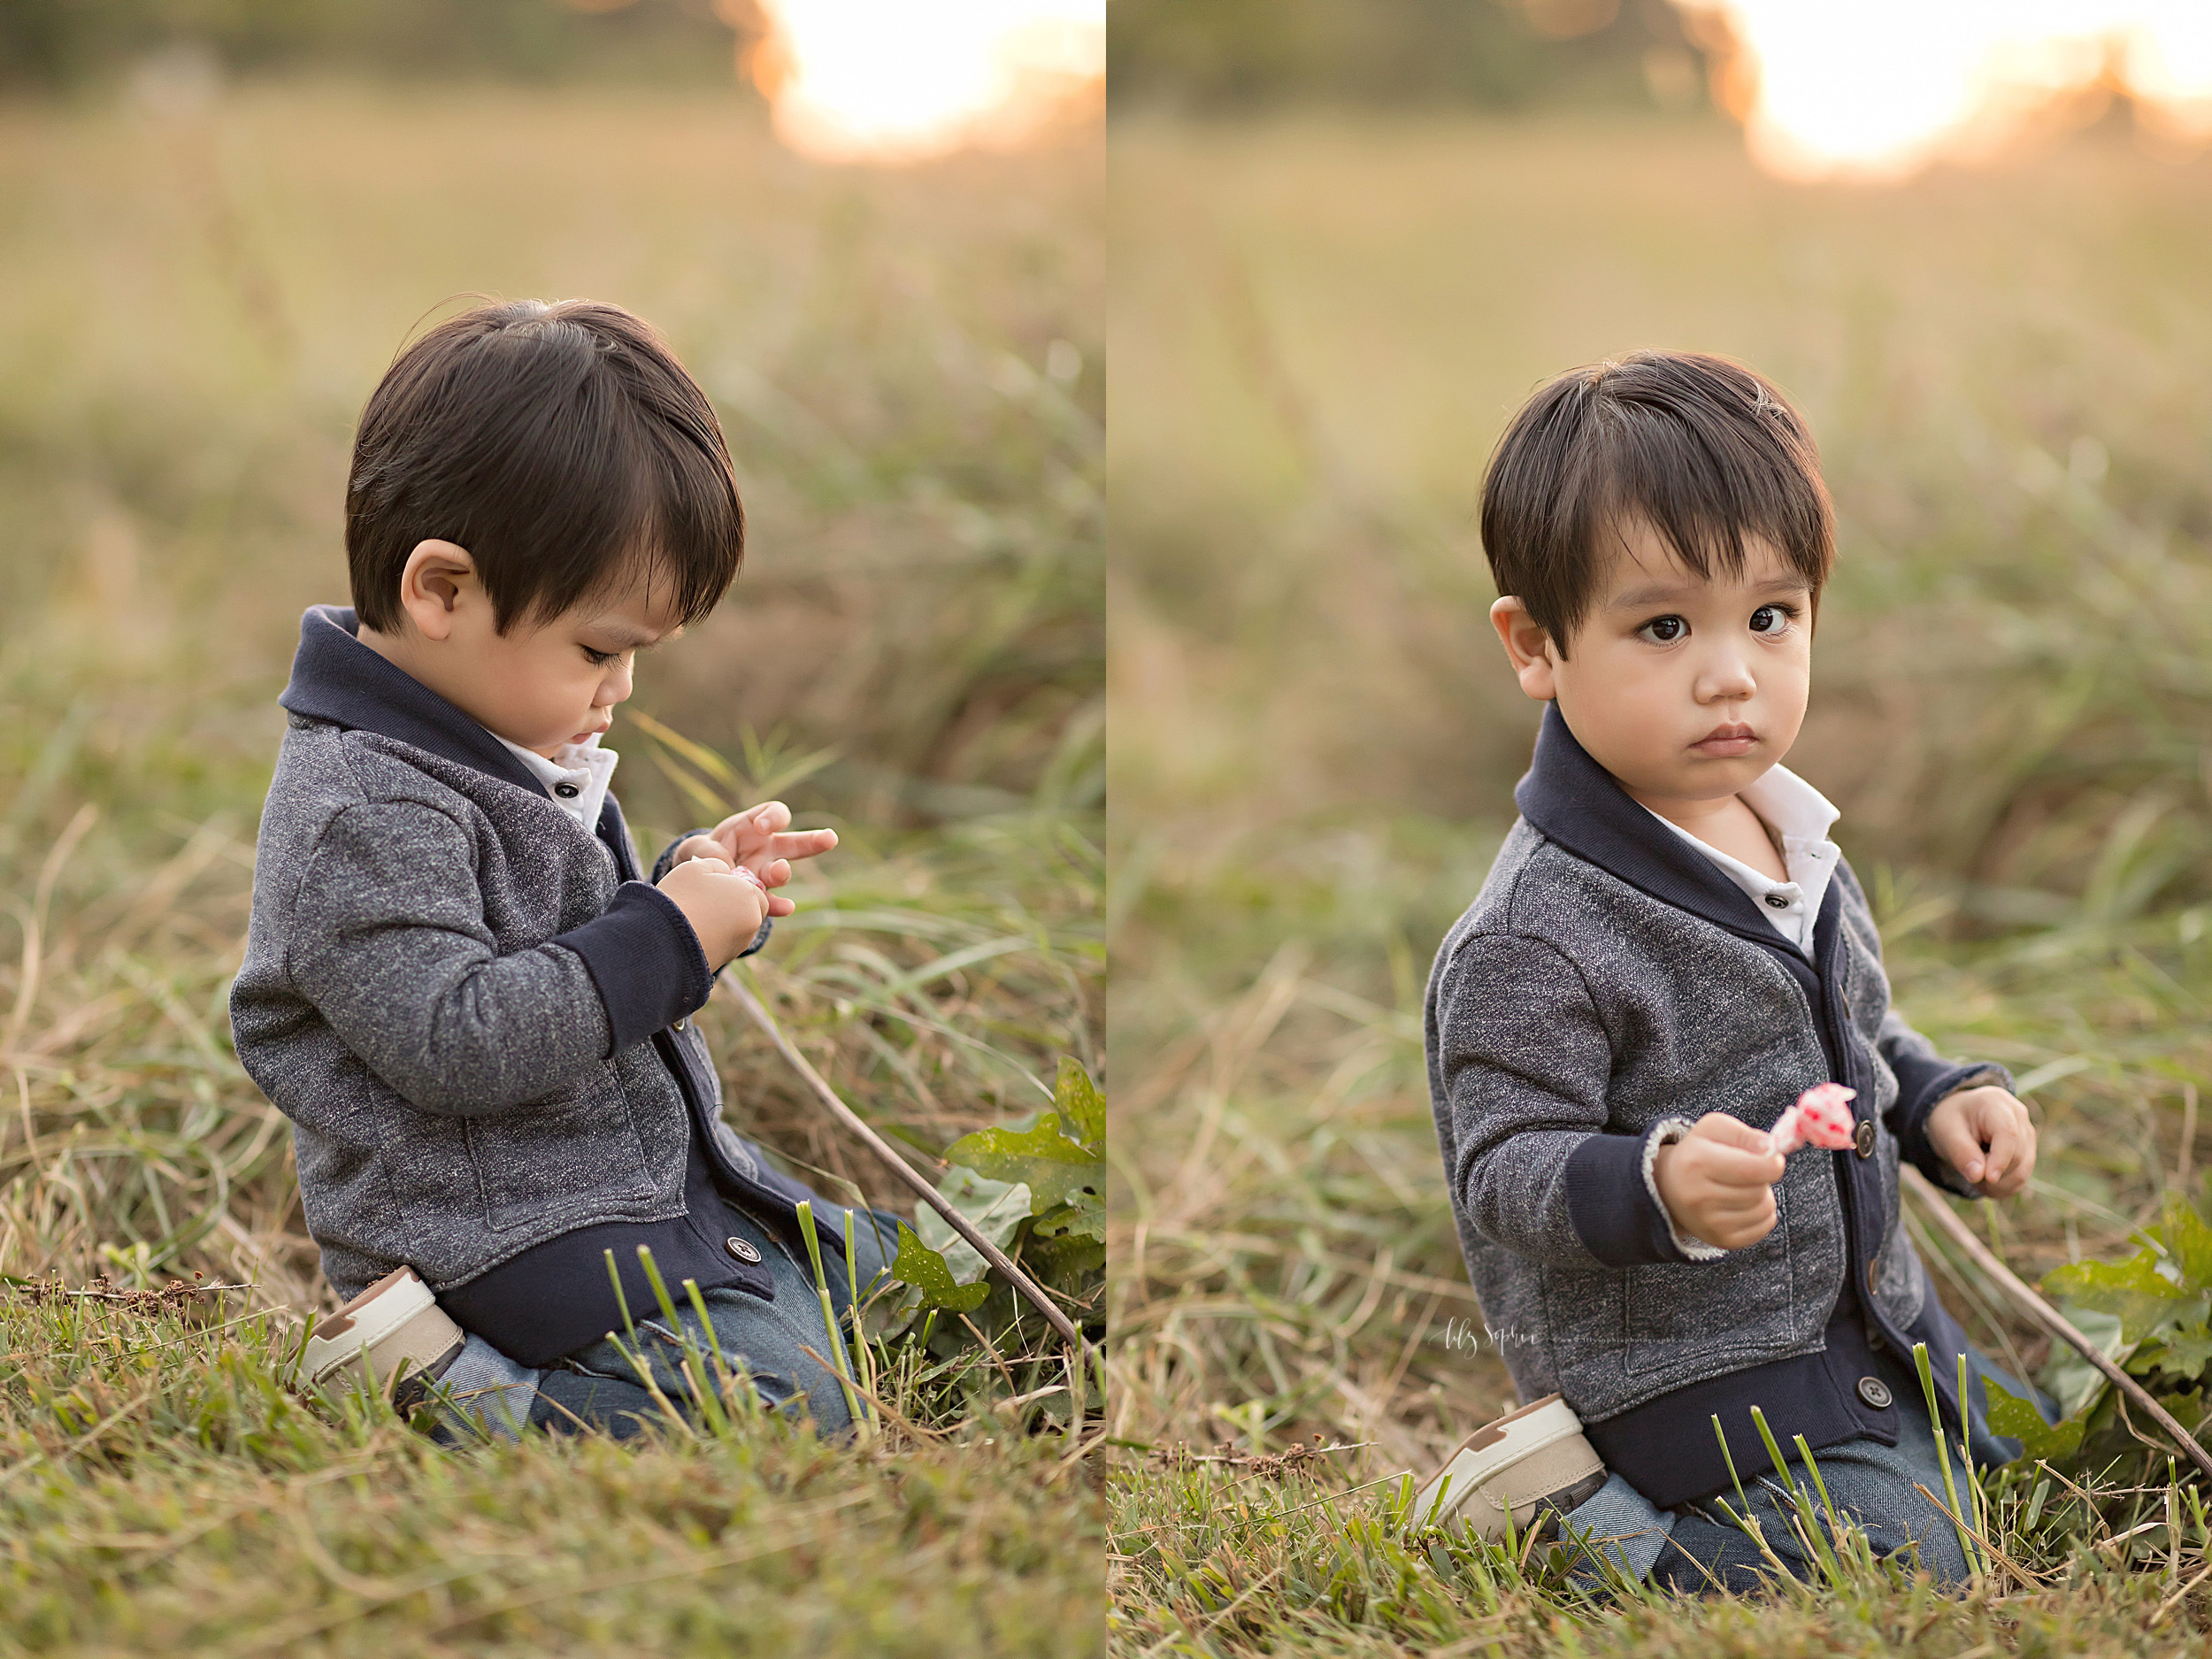 atlanta-peachtree-hills-alpharetta-sandy-springs-buckhead-virginia-highlands-west-end-decatur-lily-sophia-photography-outdoor-sunset-field-second-birthday-toddler-boy-family-photos_1163.jpg